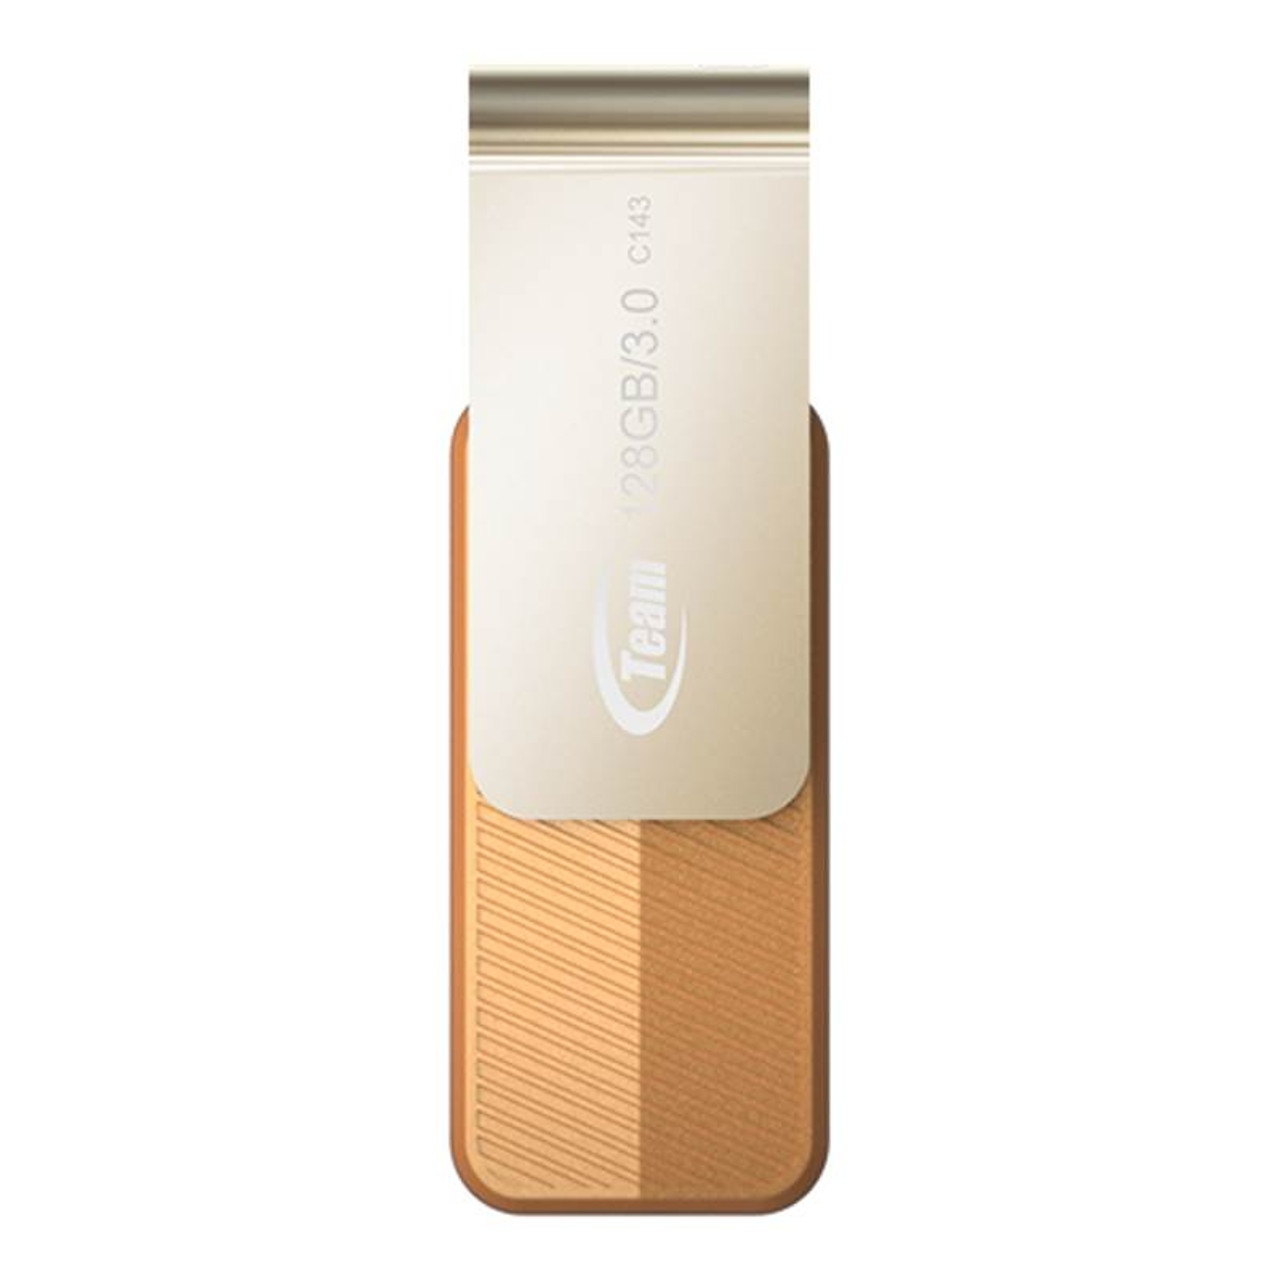 Image for Team C143 128GB USB 3.0 USB Drive CX Computer Superstore